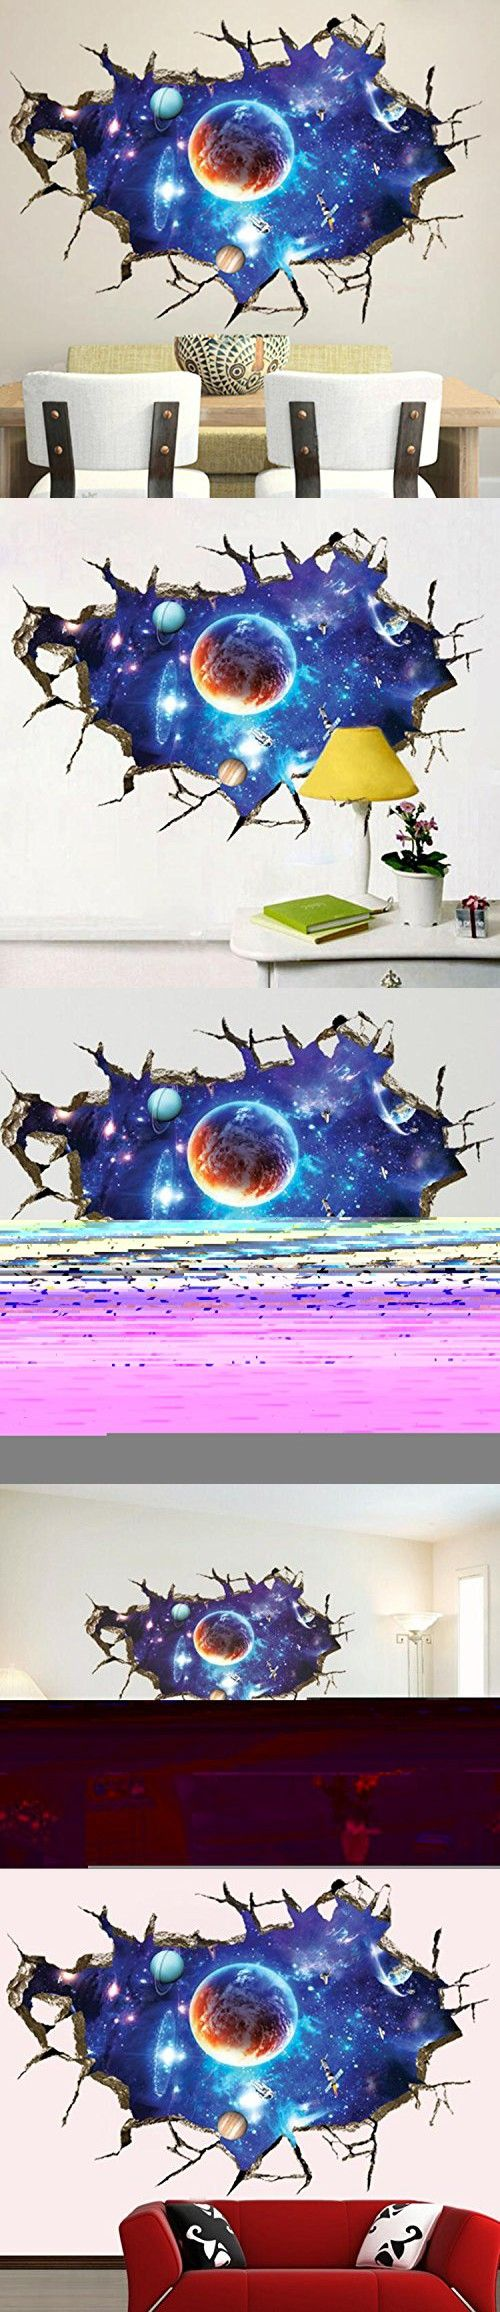 Best 25 cracked wall ideas on pinterest wall stickers lego how highfs removable 3d cracked wall outer space stars universe planets art mural vinyl waterproof wall stickers amipublicfo Gallery